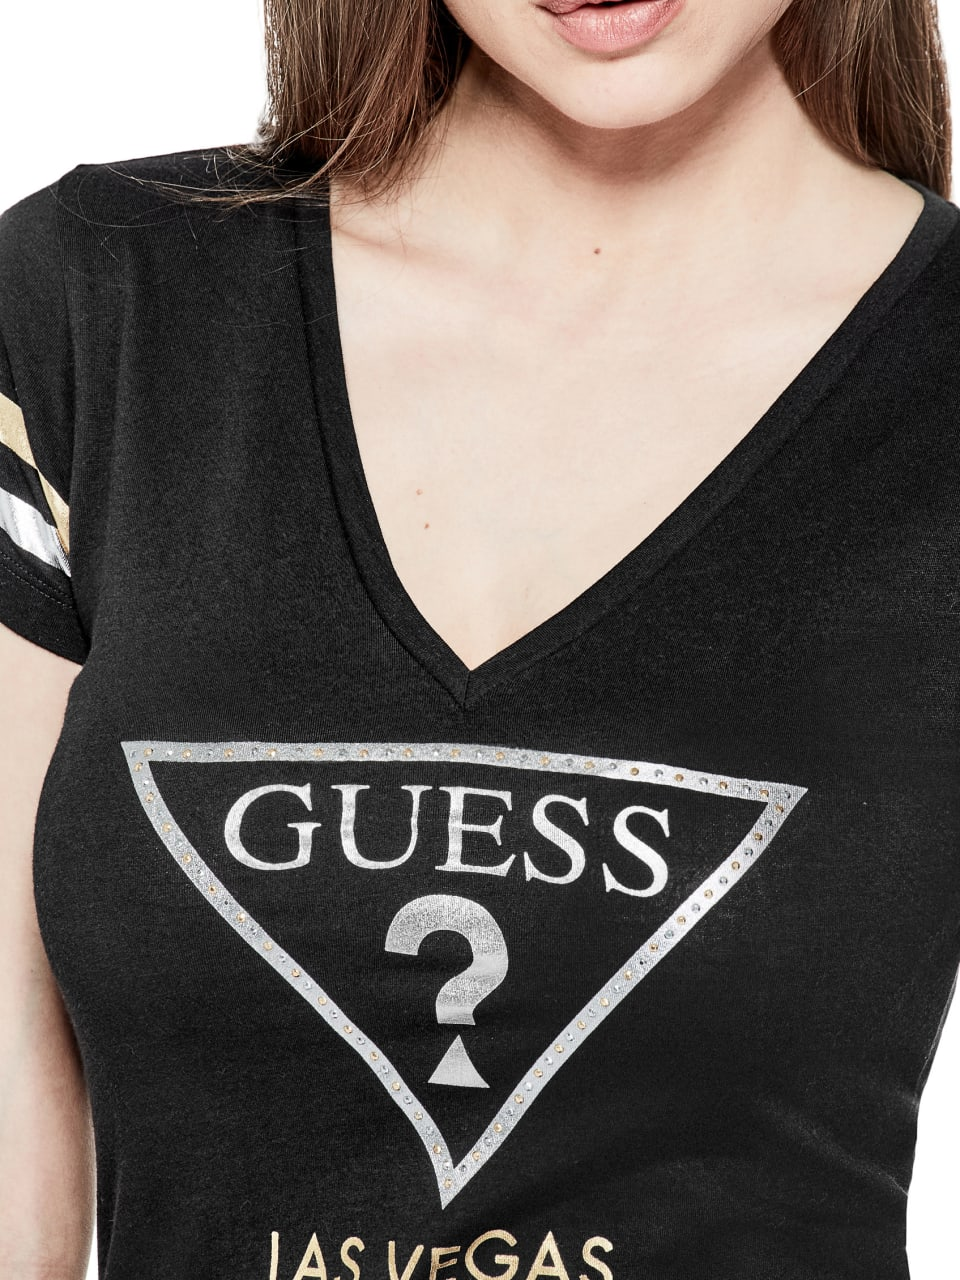 GUESS-Factory-Women-039-s-Las-Vegas-City-Tee thumbnail 8